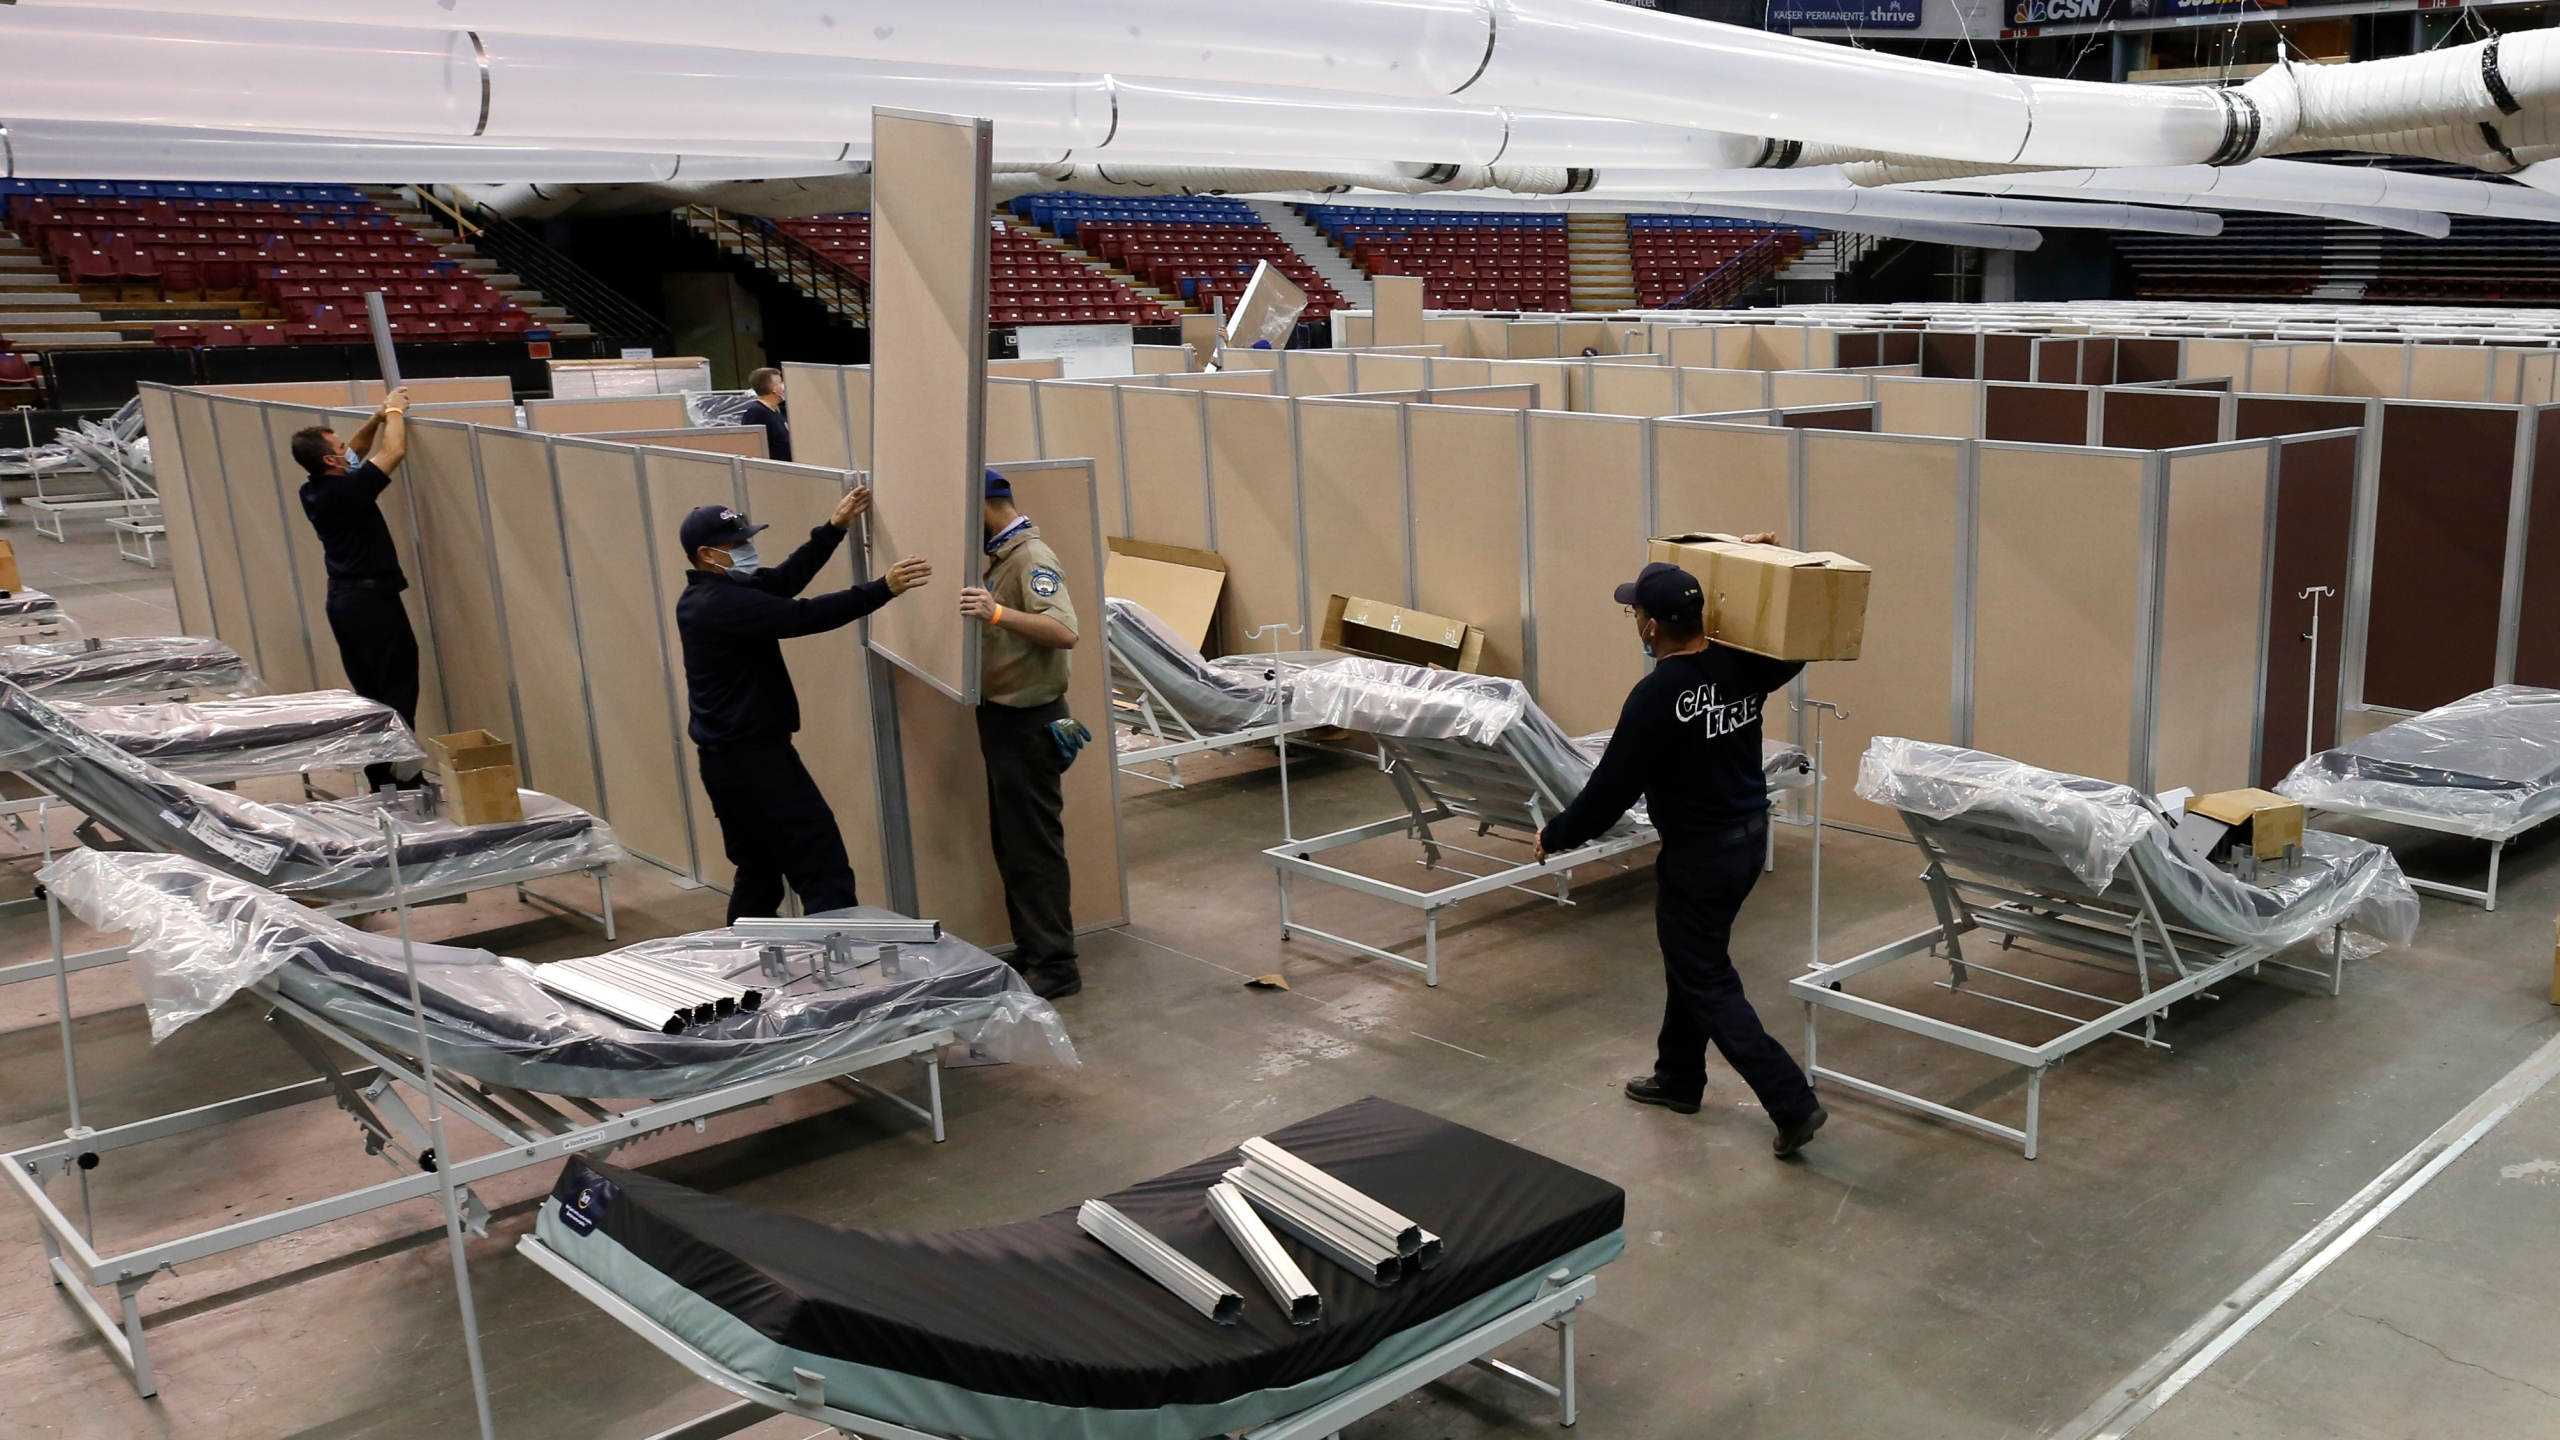 In this April 18, 2020 file photo partitions are installed between beds as work is performed to turn the Sleep Train Arena into a 400 bed emergency field hospital to help deal with the coronavirus, in Sacramento, Calif. (AP Photo/Rich Pedroncelli, File)